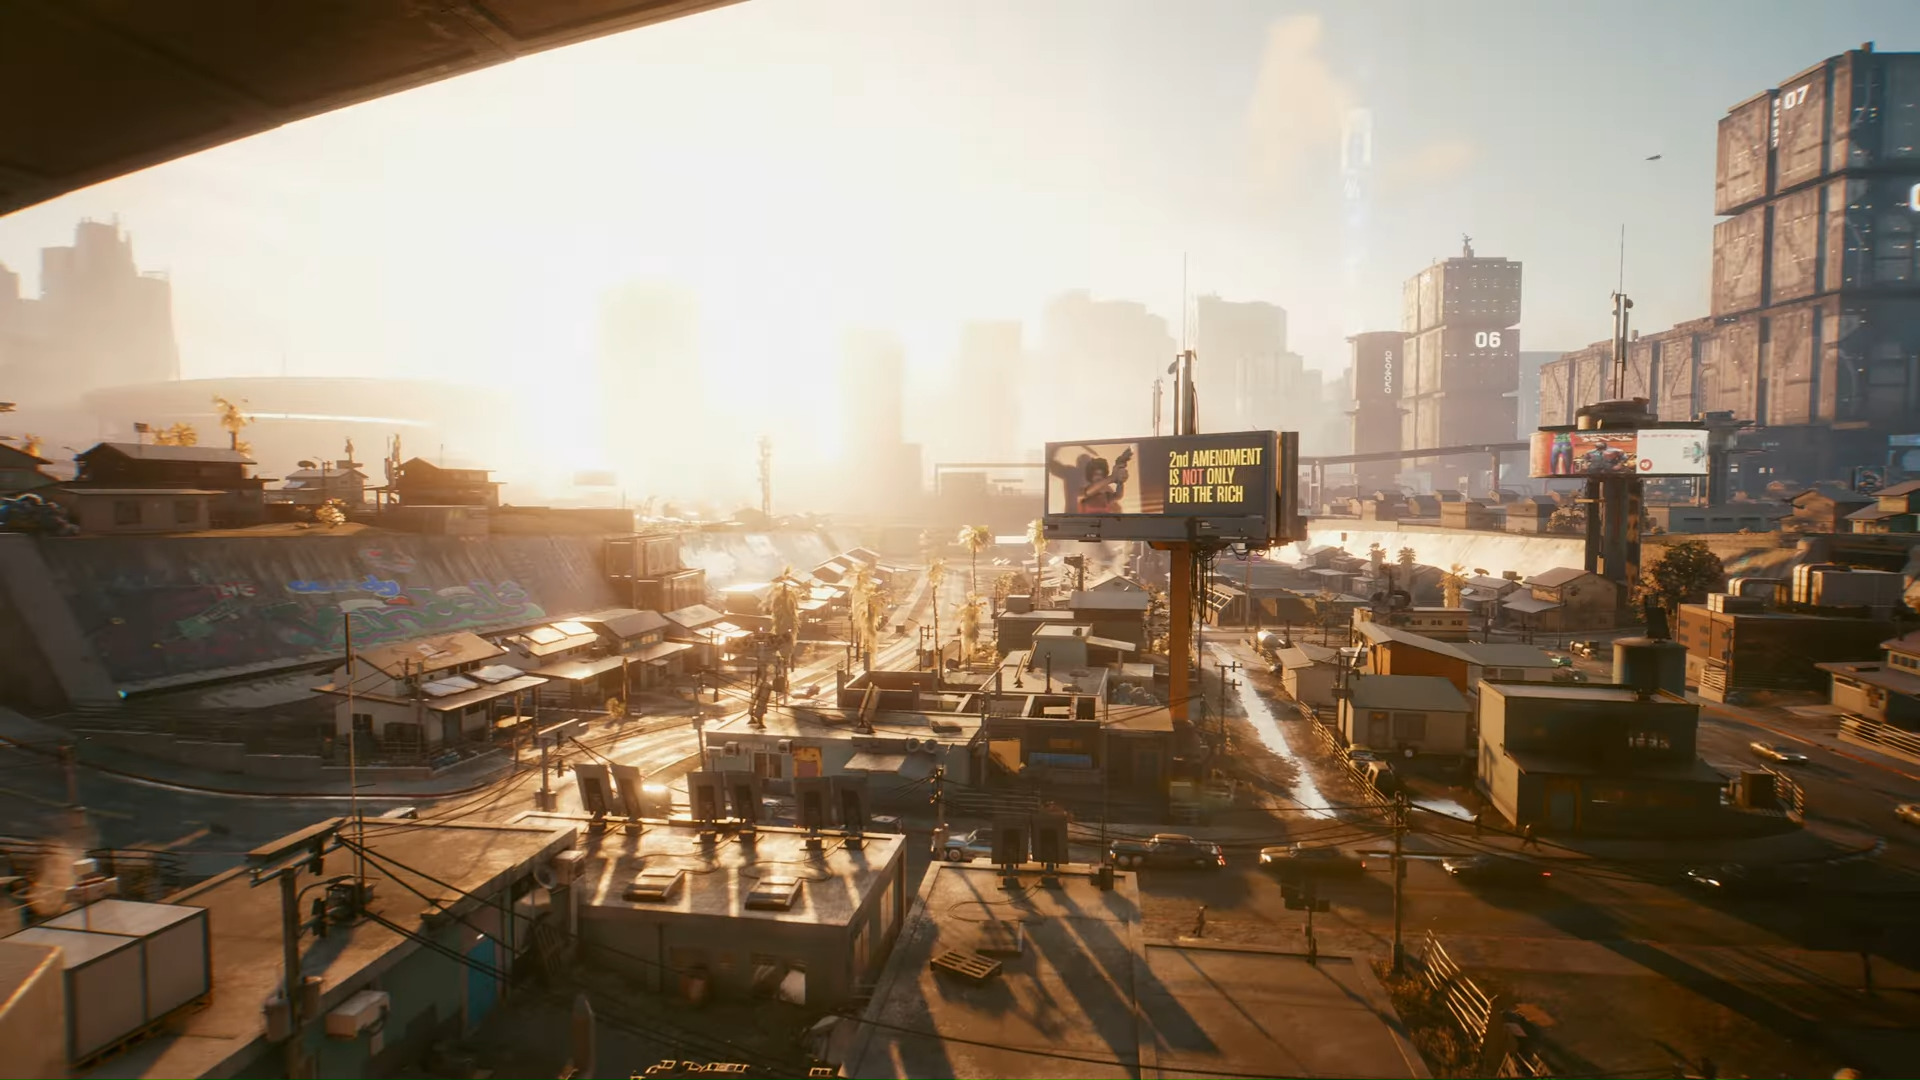 Cyberpunk 2077 Is Receiving Free DLC Early 2021, According To Game's Official Website